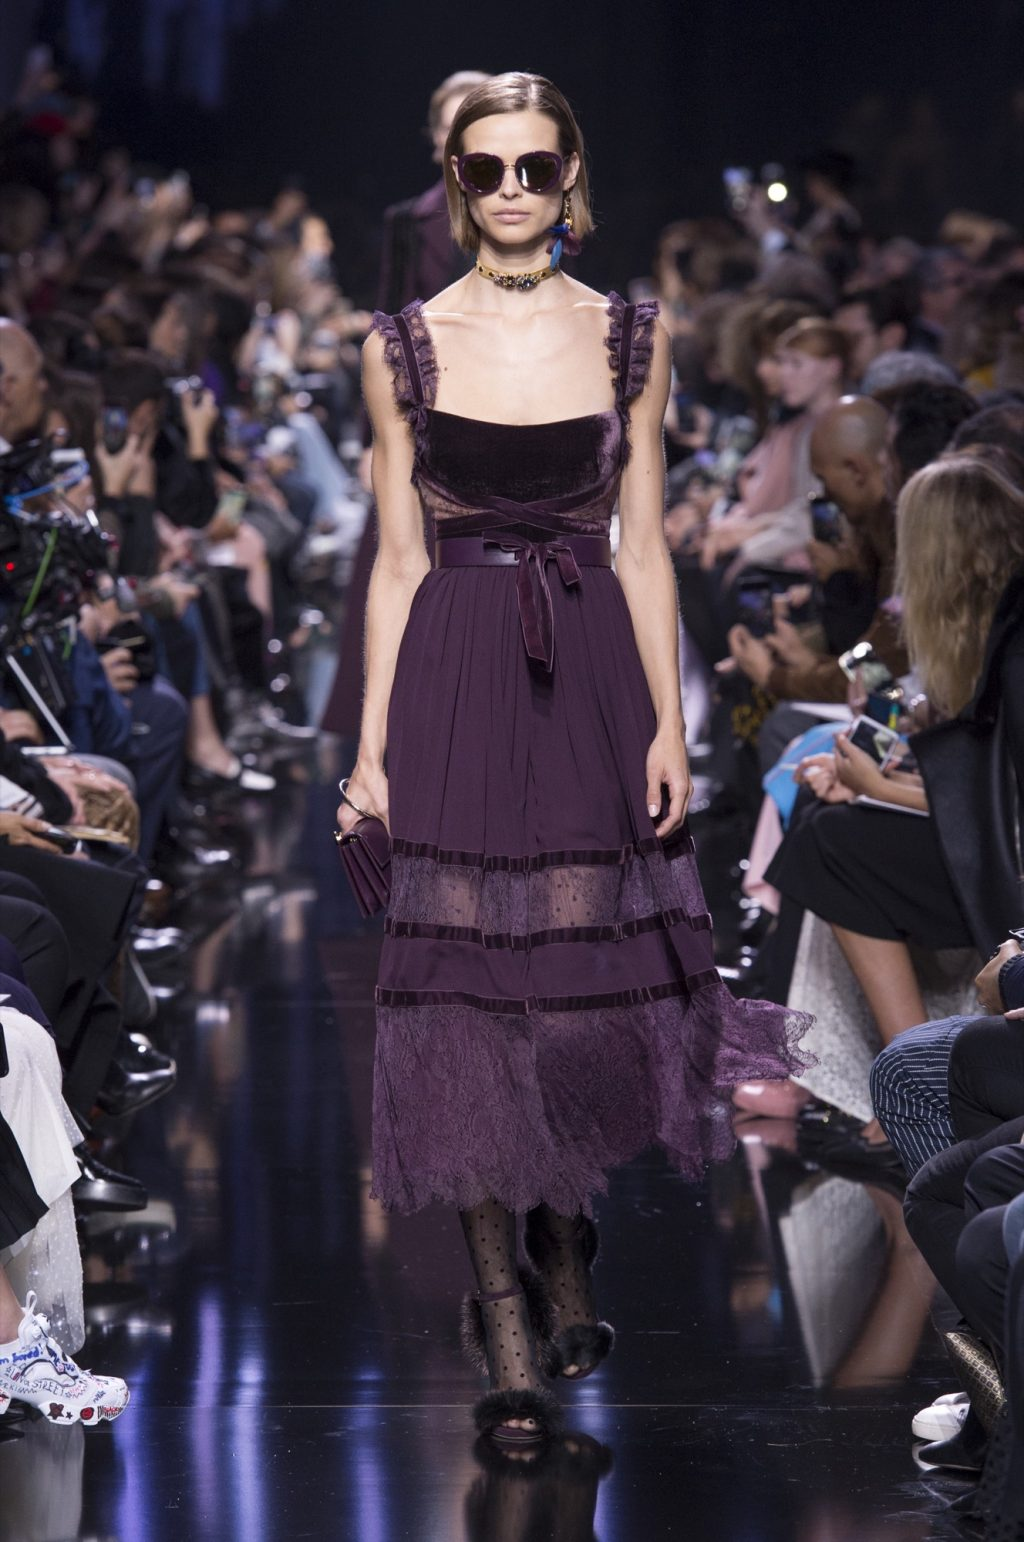 Elie Saab's Dark, Glamorous Ballerina Story for Fall/Winter 2017